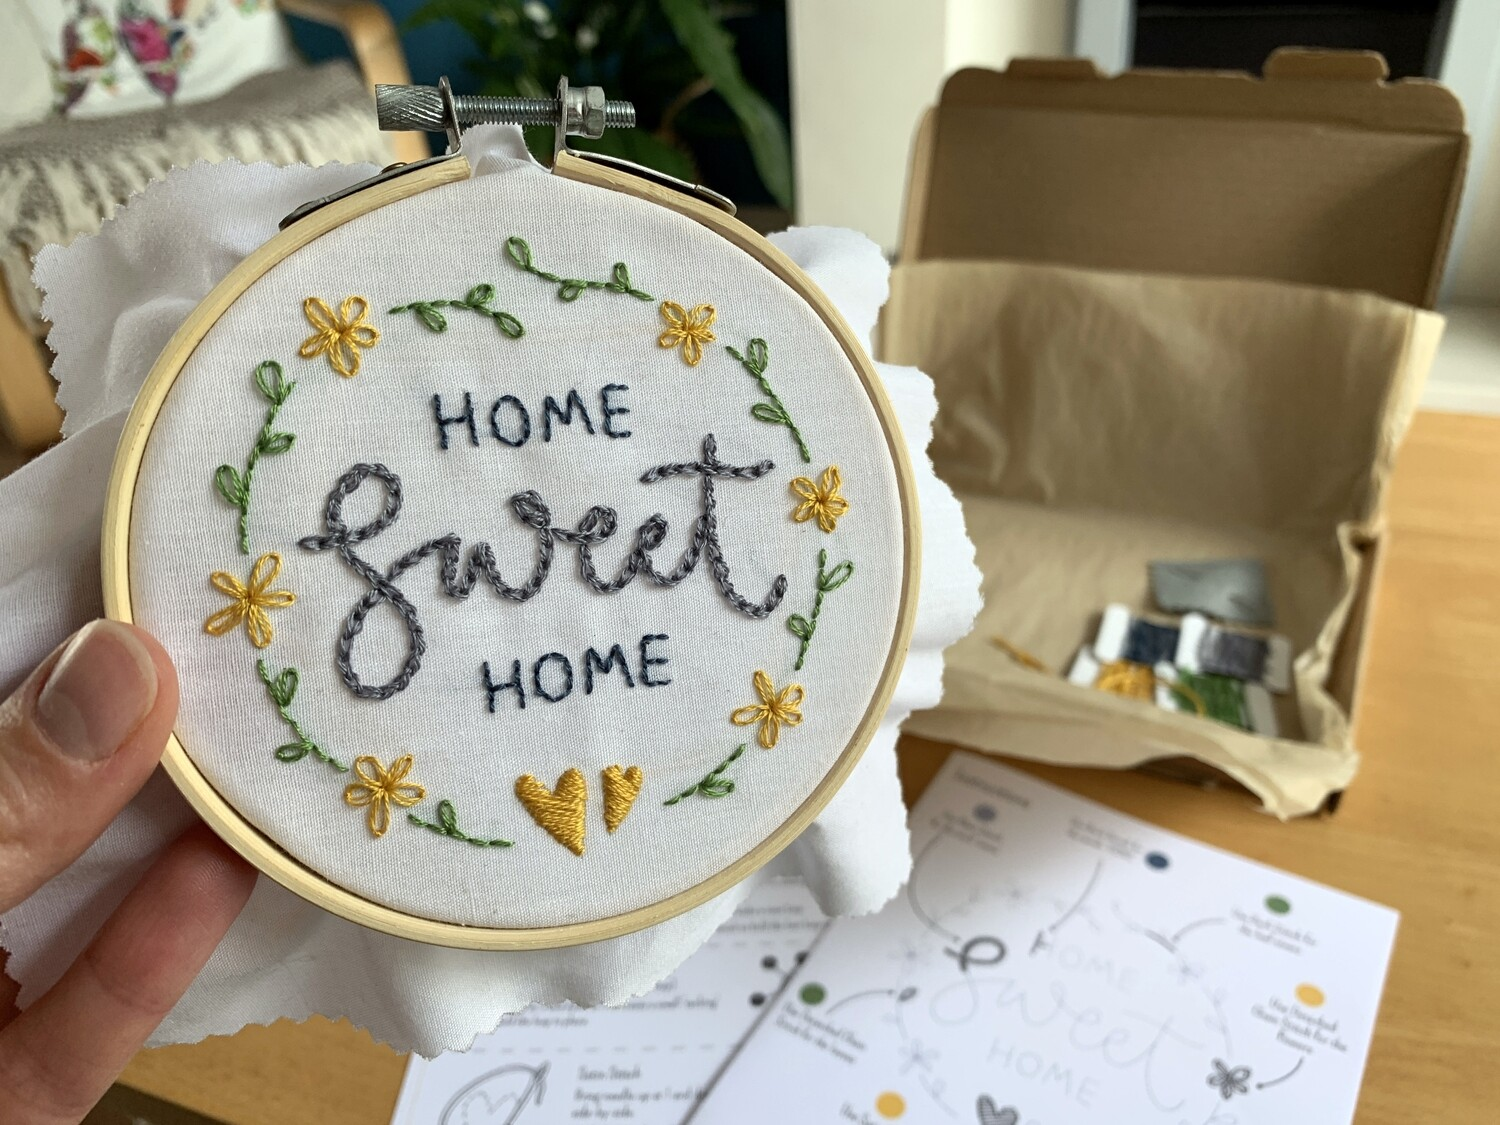 Home Sweet Home embroidery hoop kit by SweetpeaPrintDesign